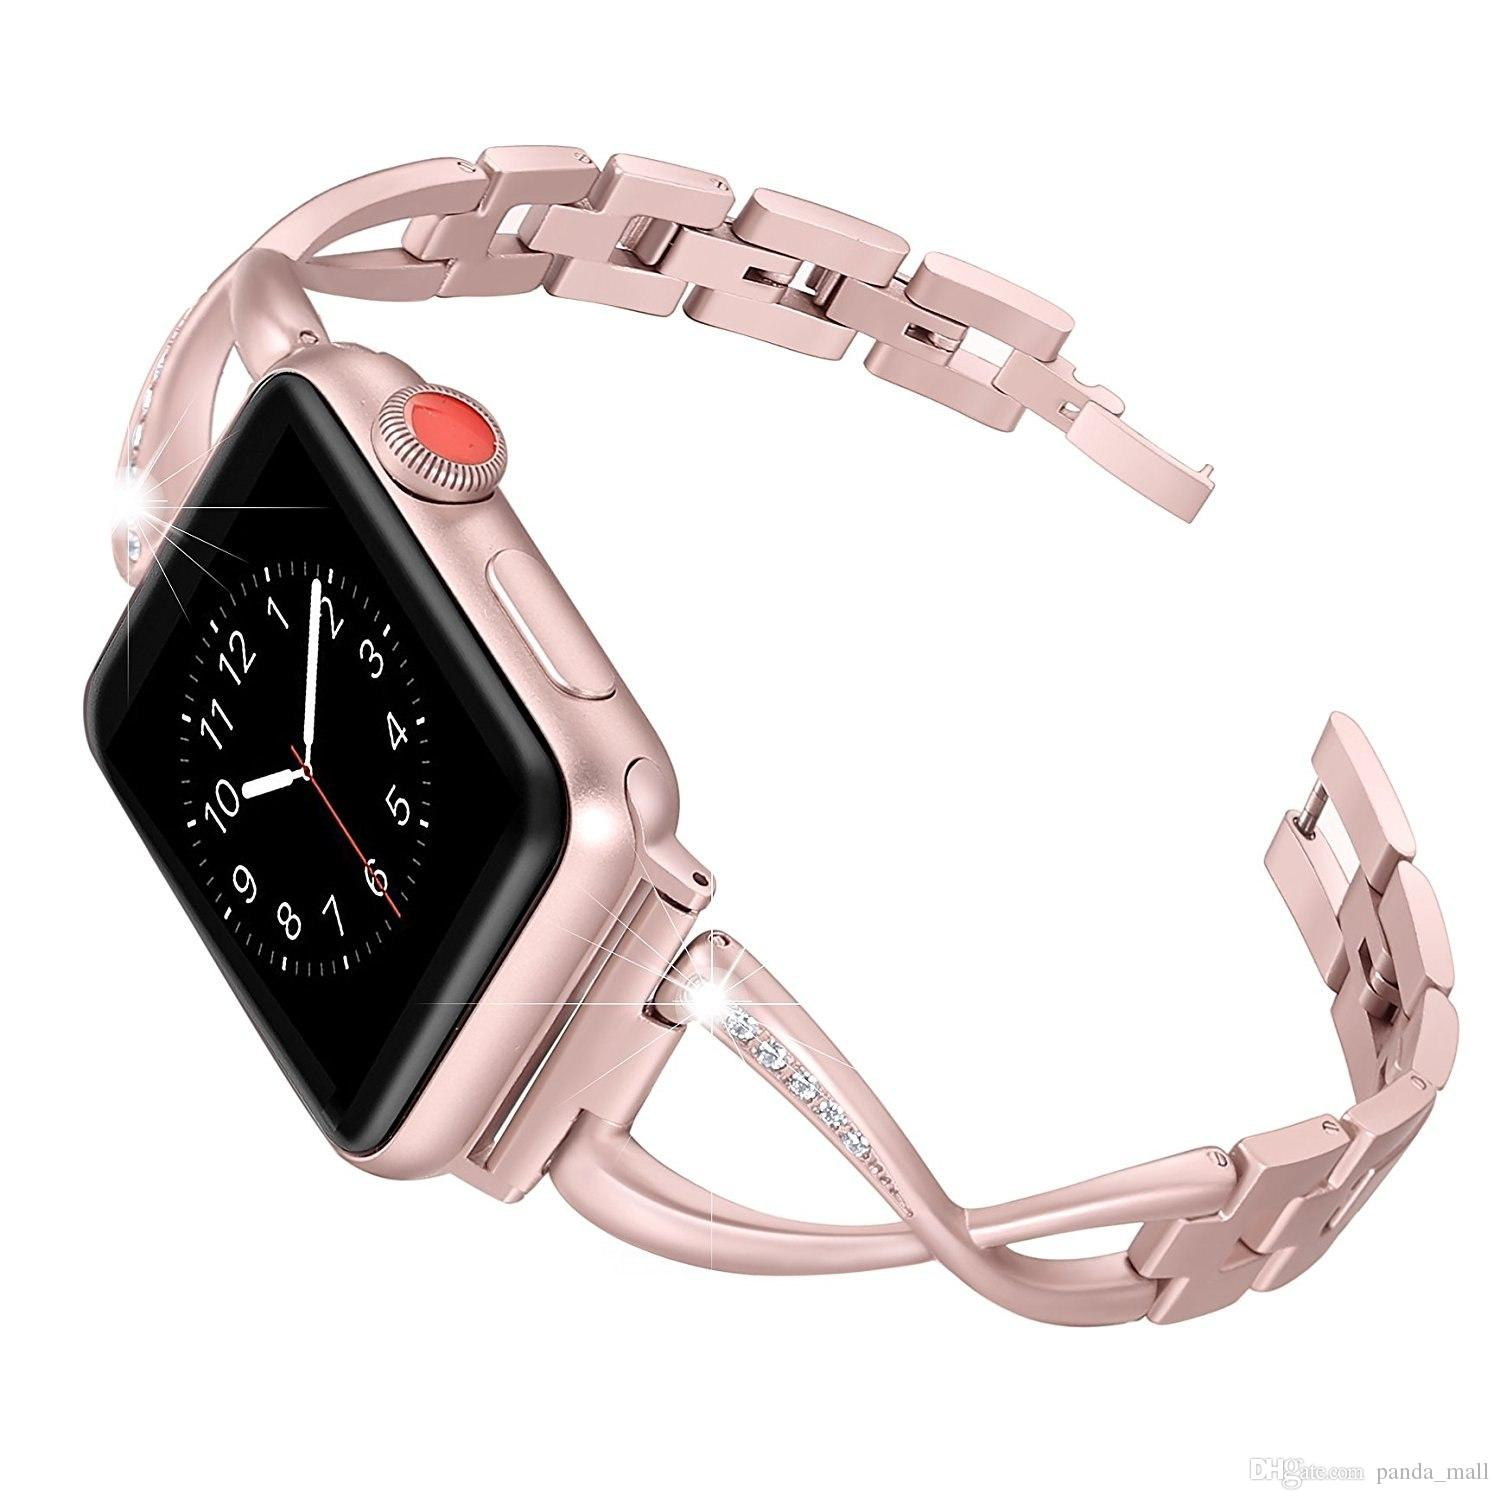 7bac5bab5c3b Women Watch Band For Apple Watch Bands 38mm 42mm Diamond Stainless Steel  Strap For Iwatch Series 3 2 1 Bracelet Wrist Watch Straps Iwatch Straps  From ...